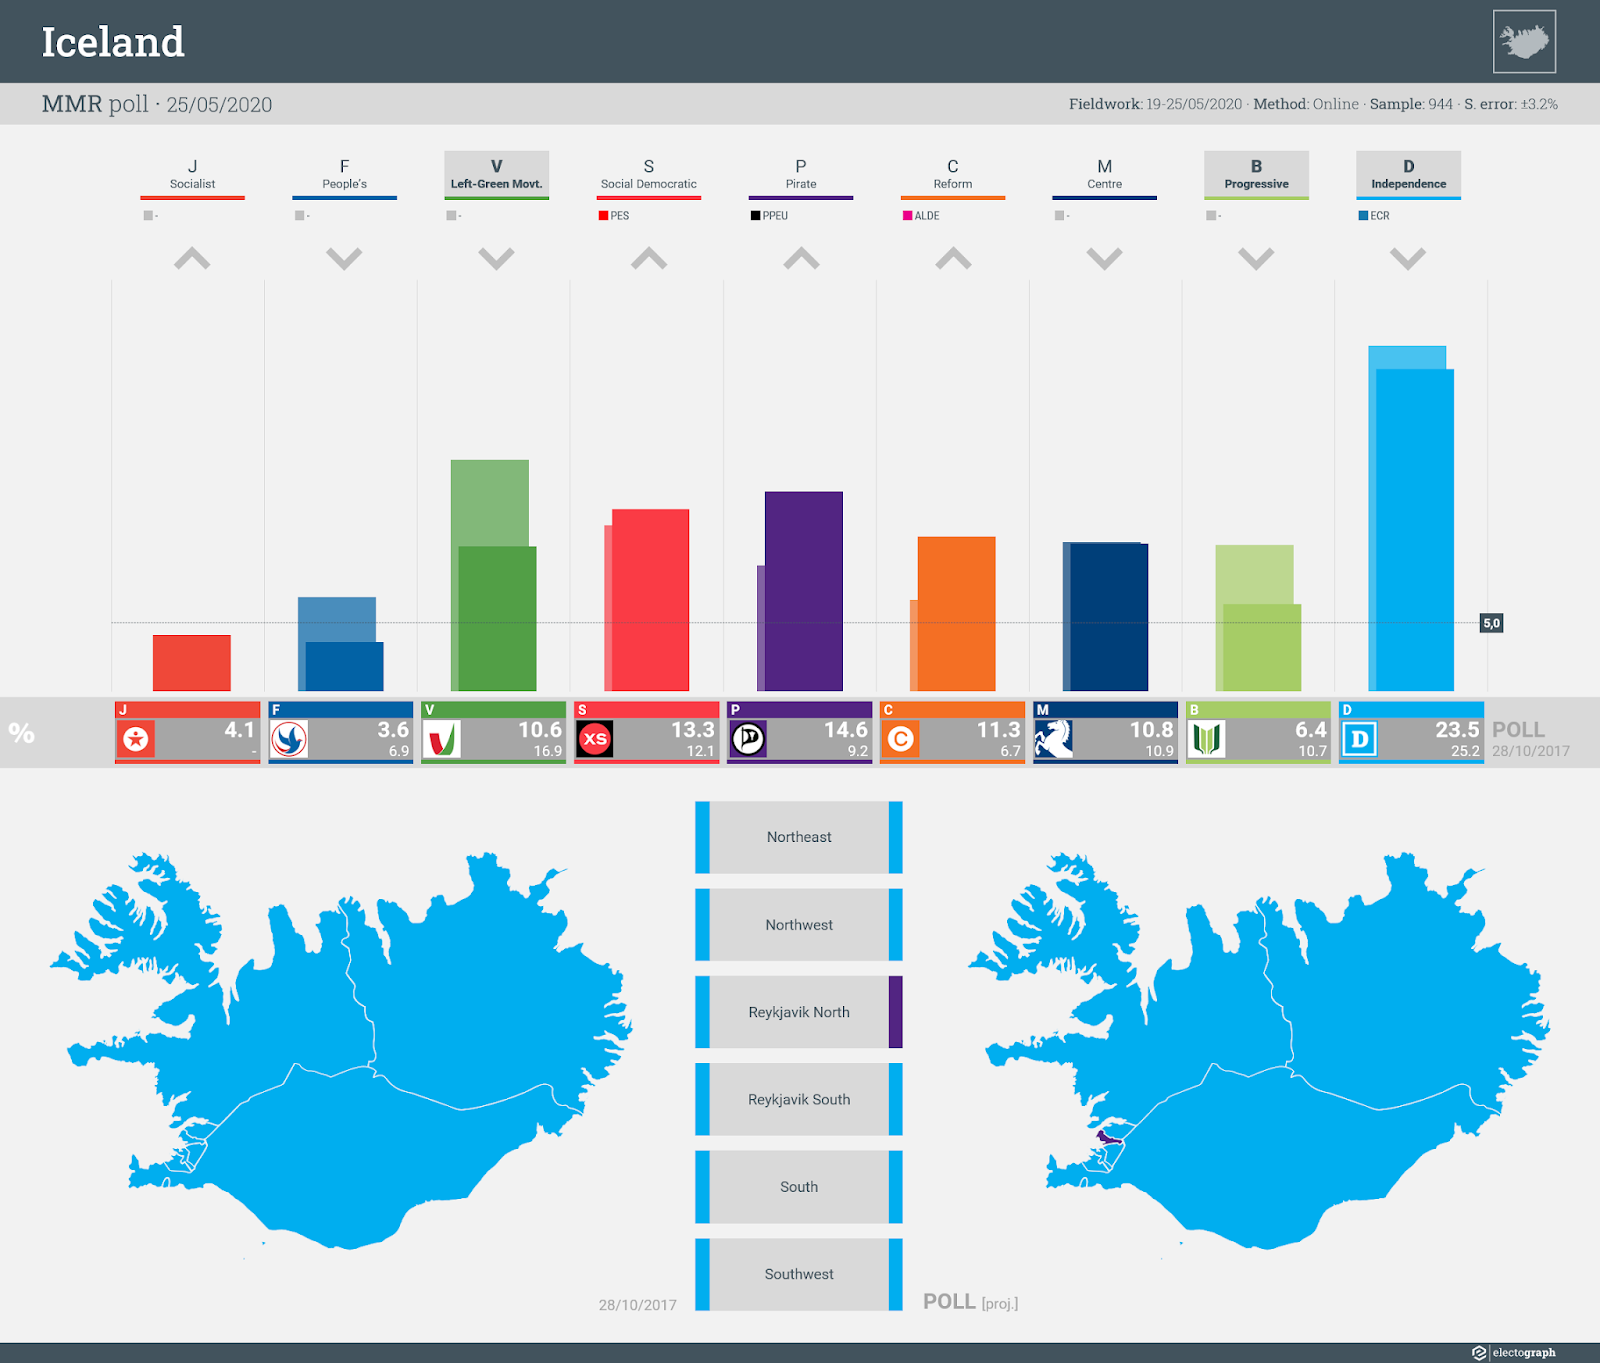 ICELAND: MMR poll chart, 25 May 2020